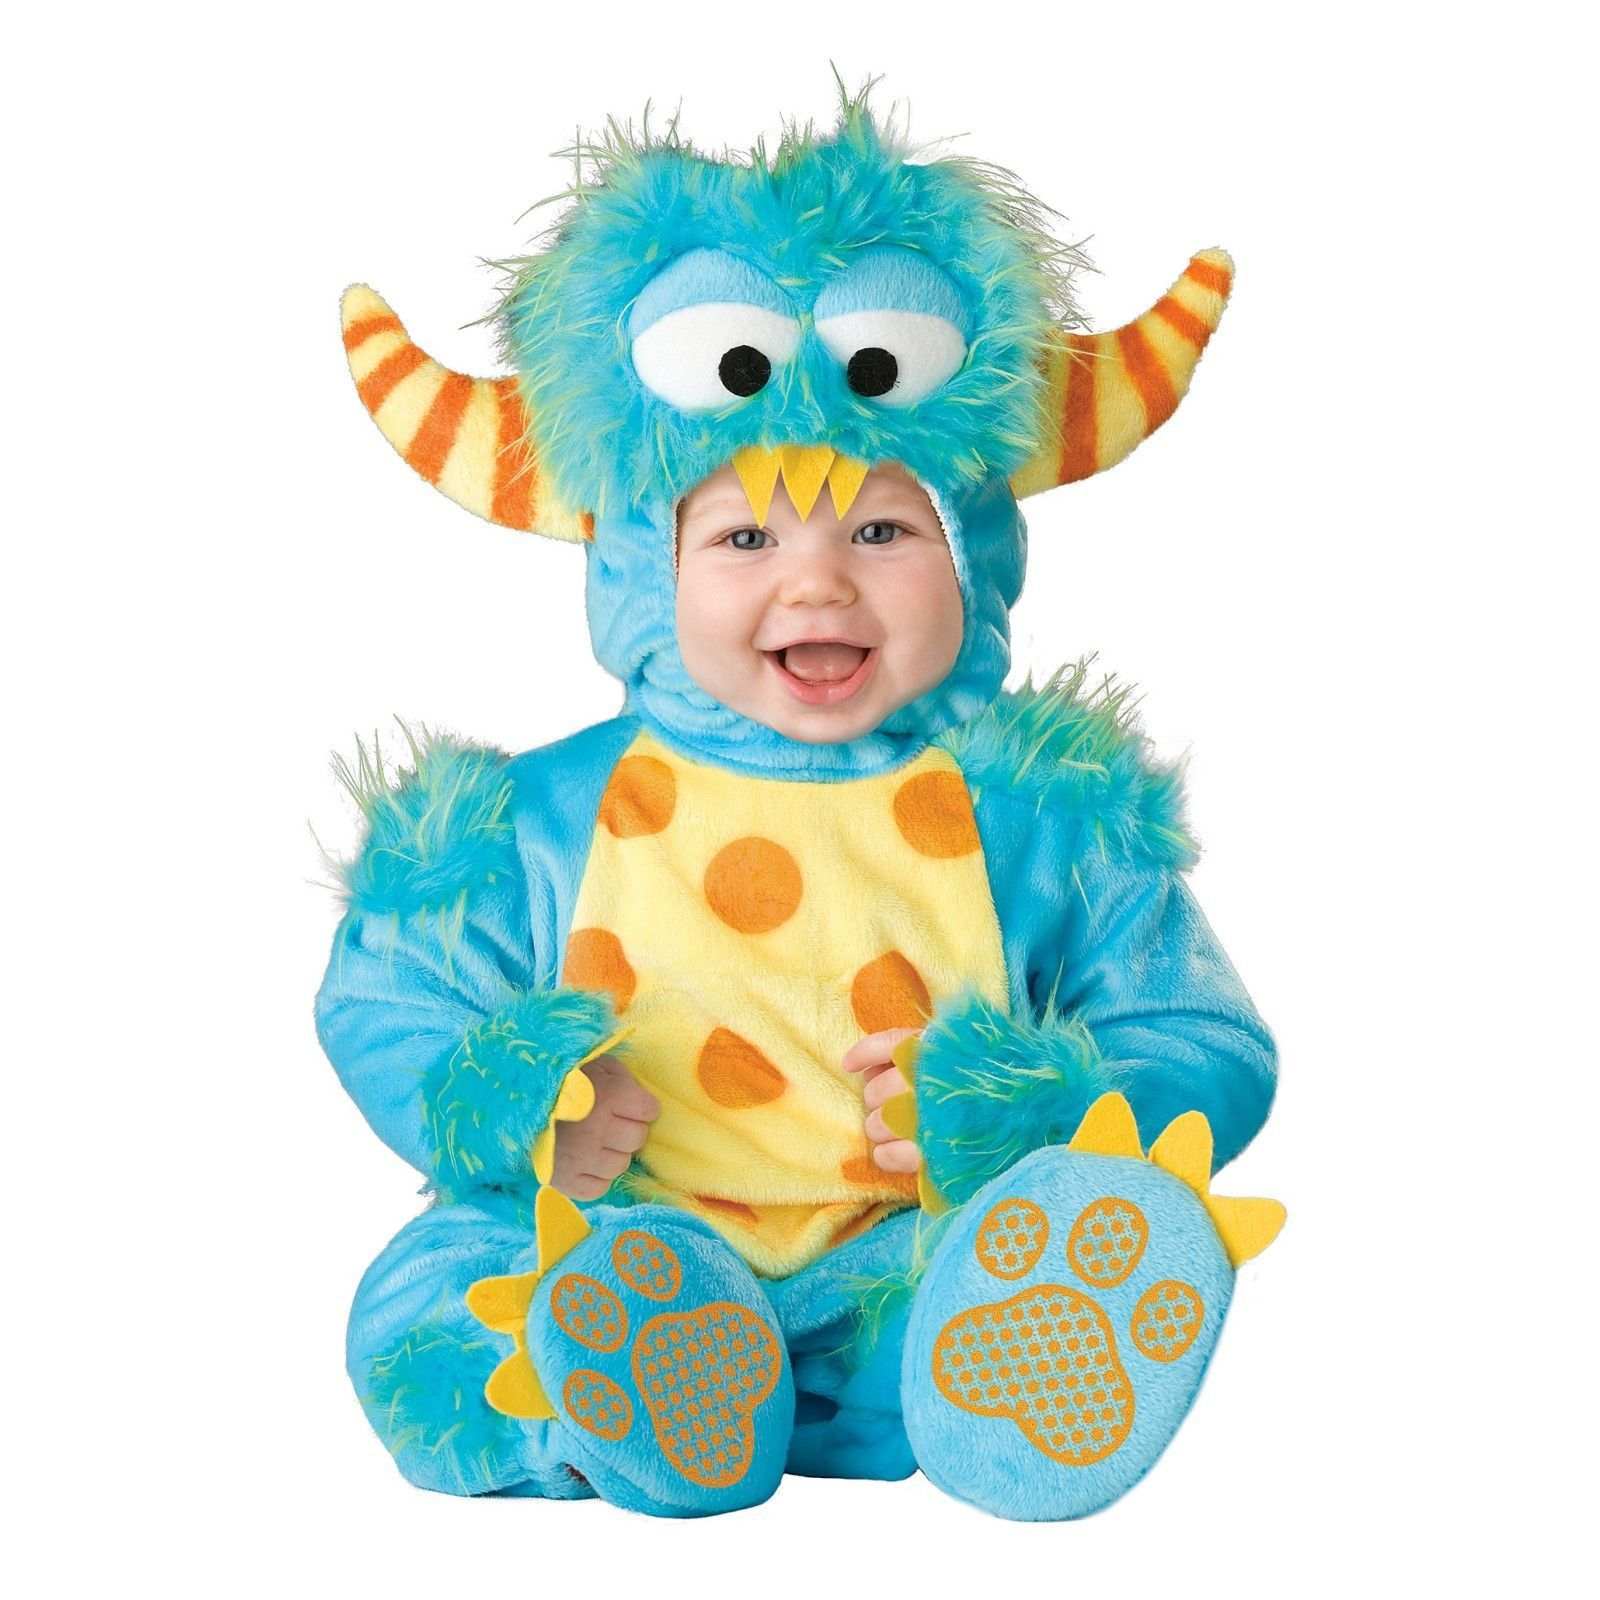 NEW NWT Boys or Girls Baby Lil Monster Halloween Costume 6/12 12/18 18/24 Months